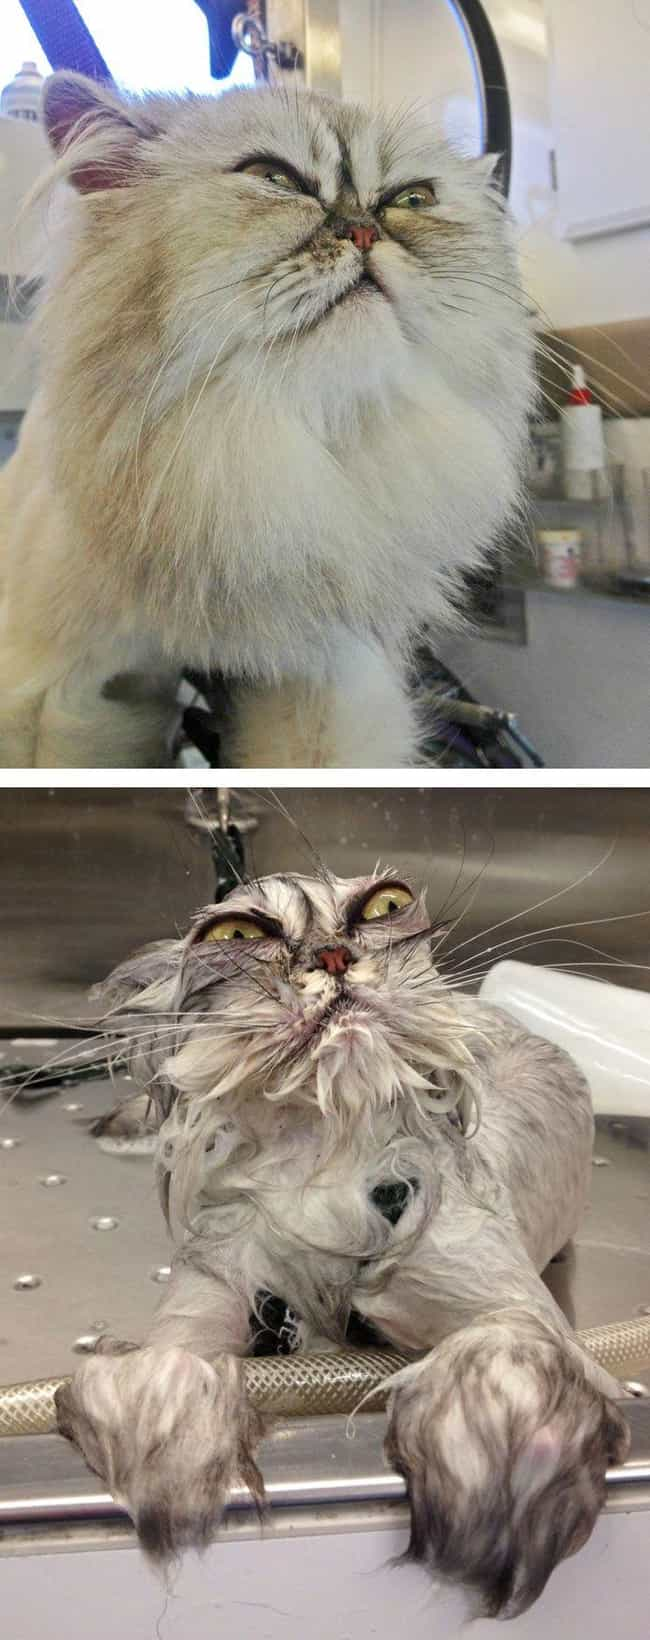 Bath Kitty Shall Exact Vengean... is listed (or ranked) 3 on the list 22 Cute Animals That Look Scary When They're Soaking Wet